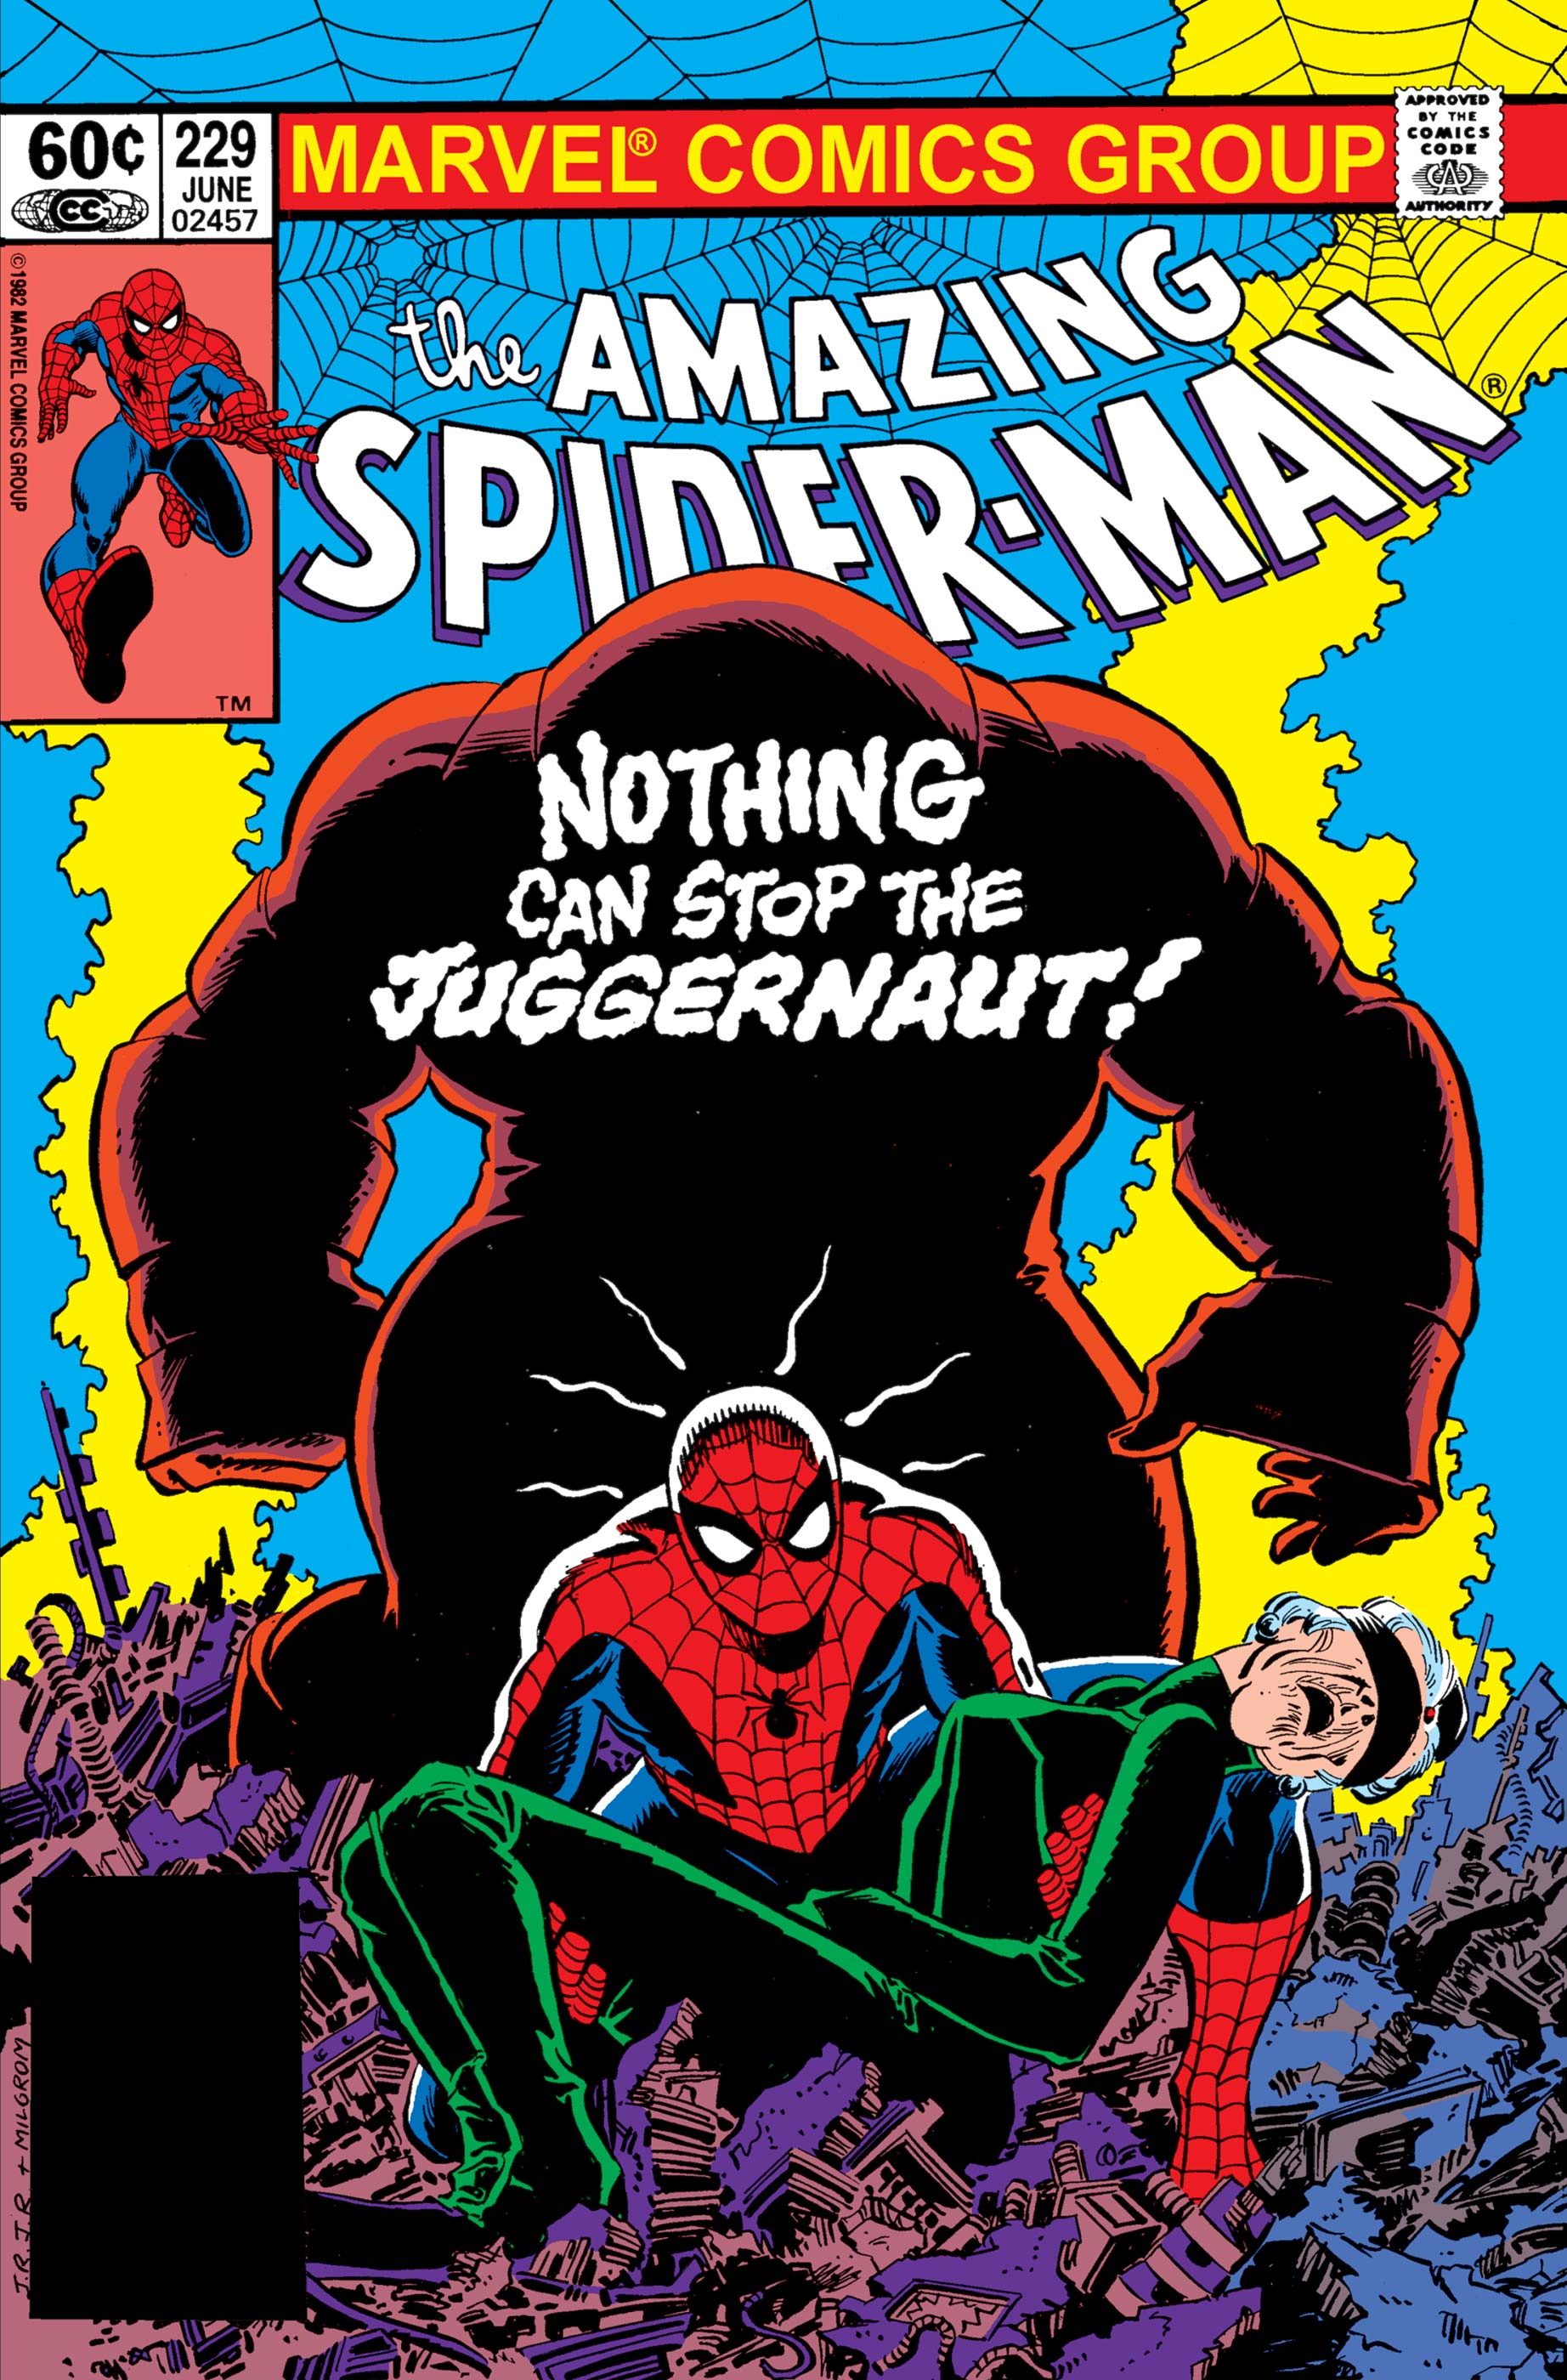 The Amazing Spider-Man (1963) #229